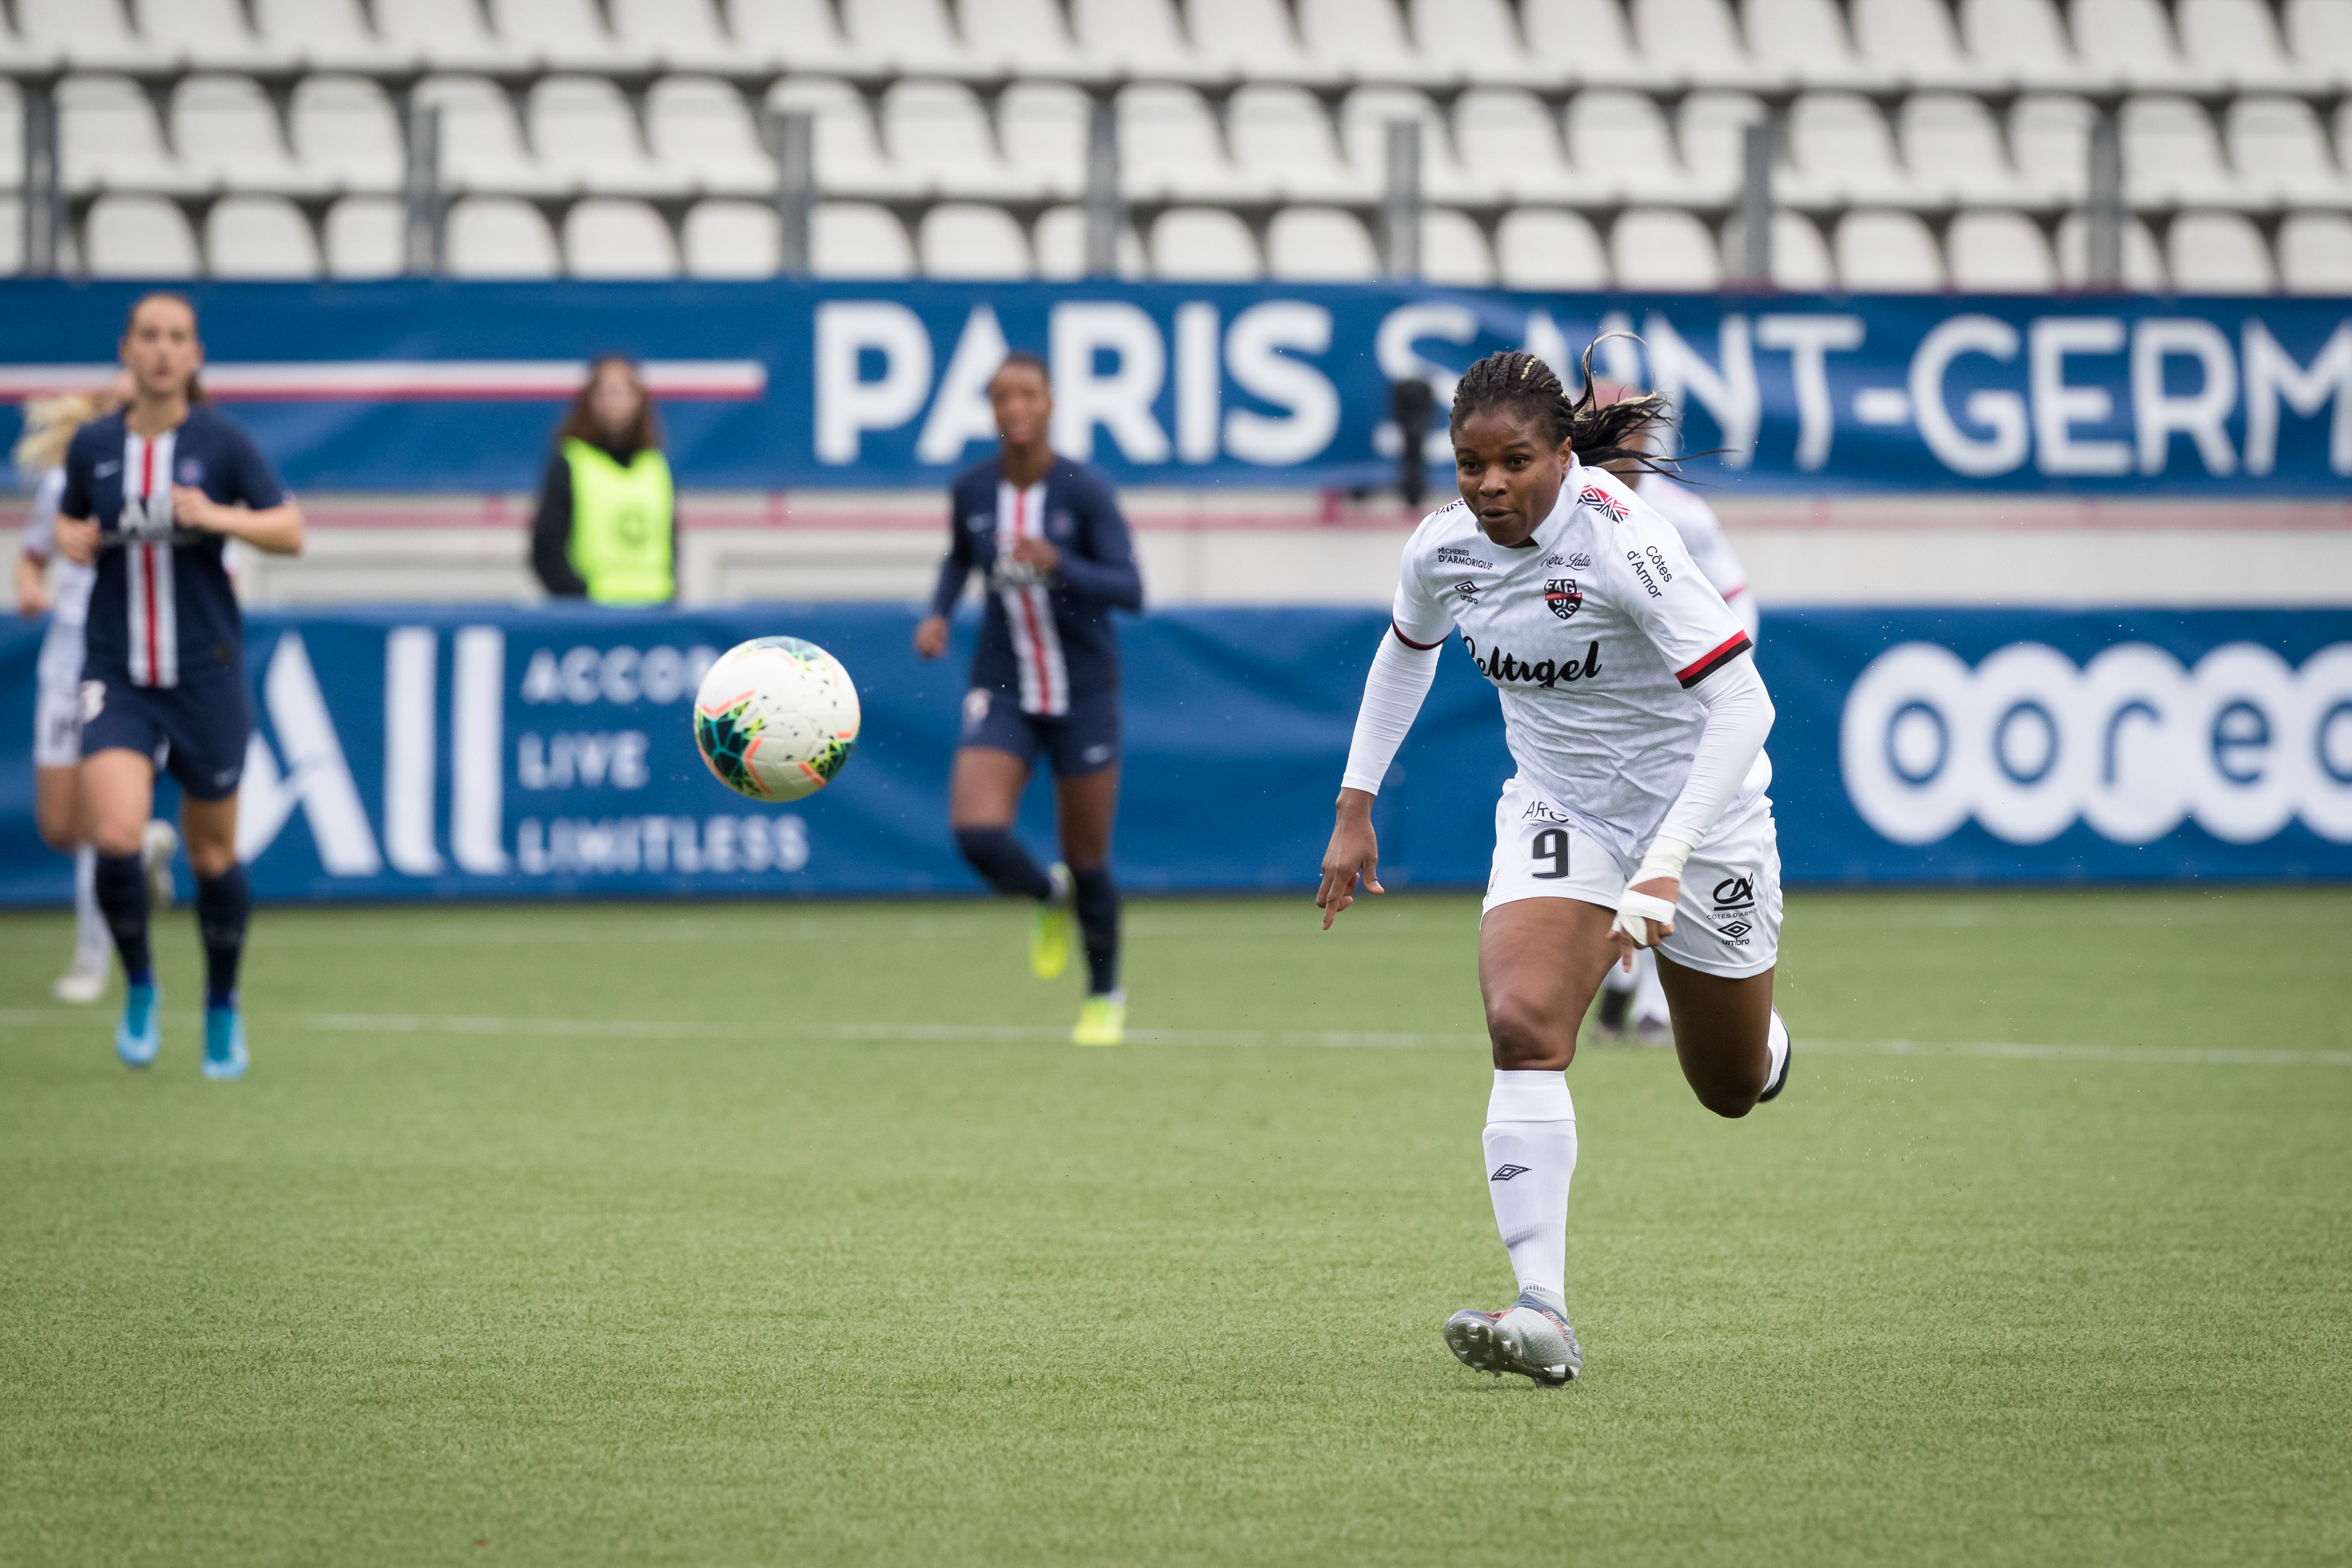 D1F Arkema match between PSG and Guingamp on November 03, 2019 in Paris, France